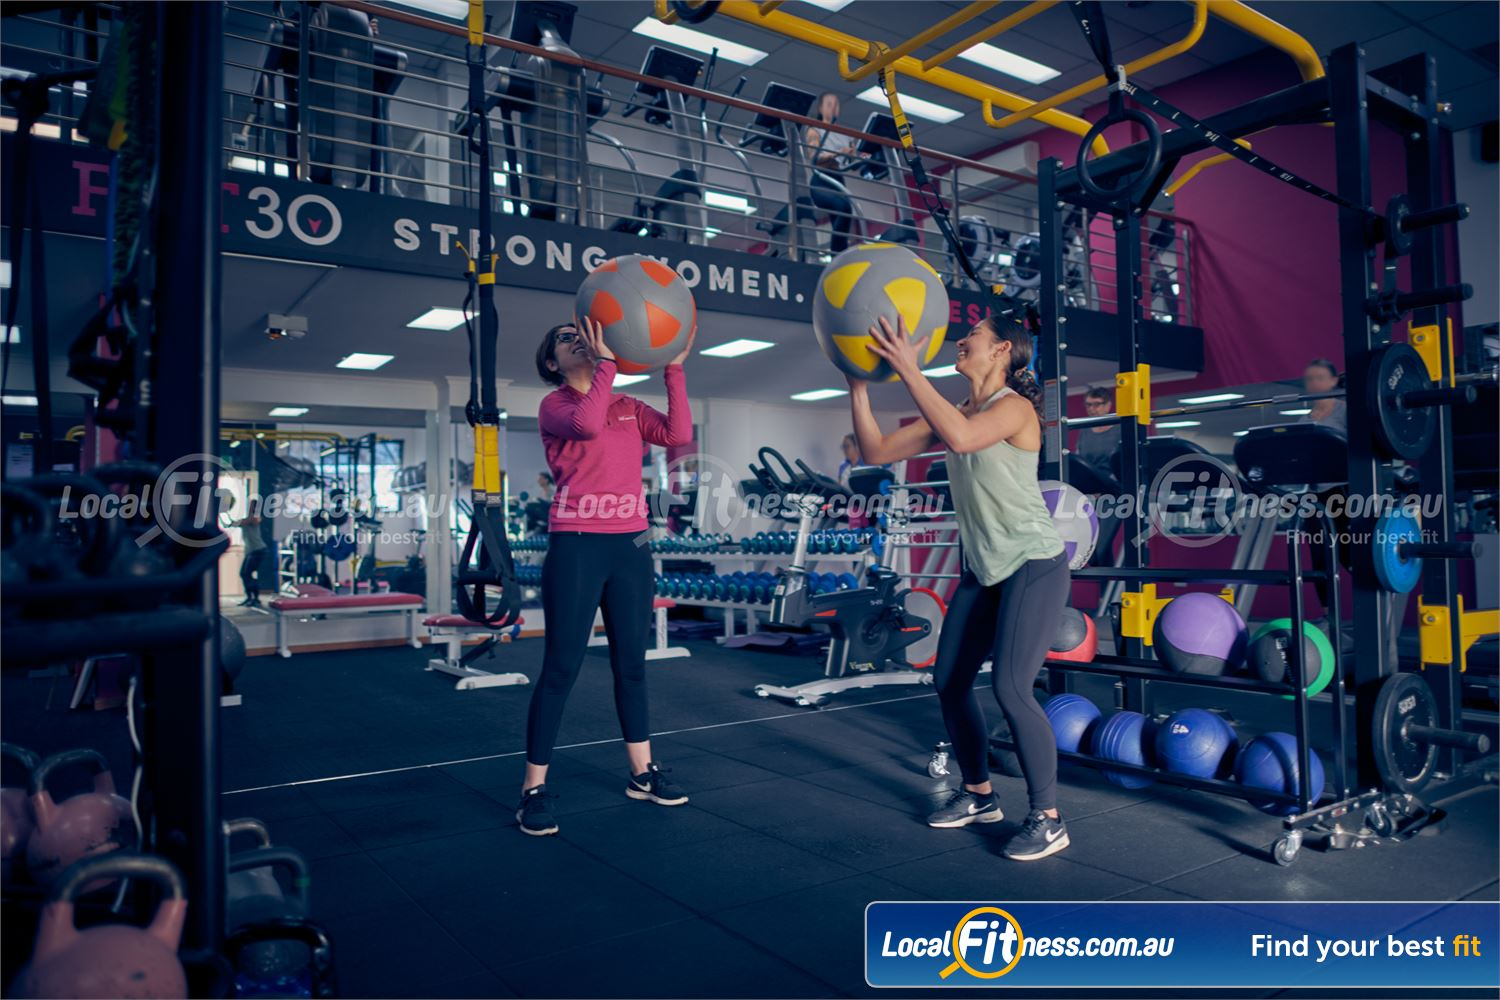 Fernwood Fitness Carlton Get into functional training in our Carlton HIIT gym area.